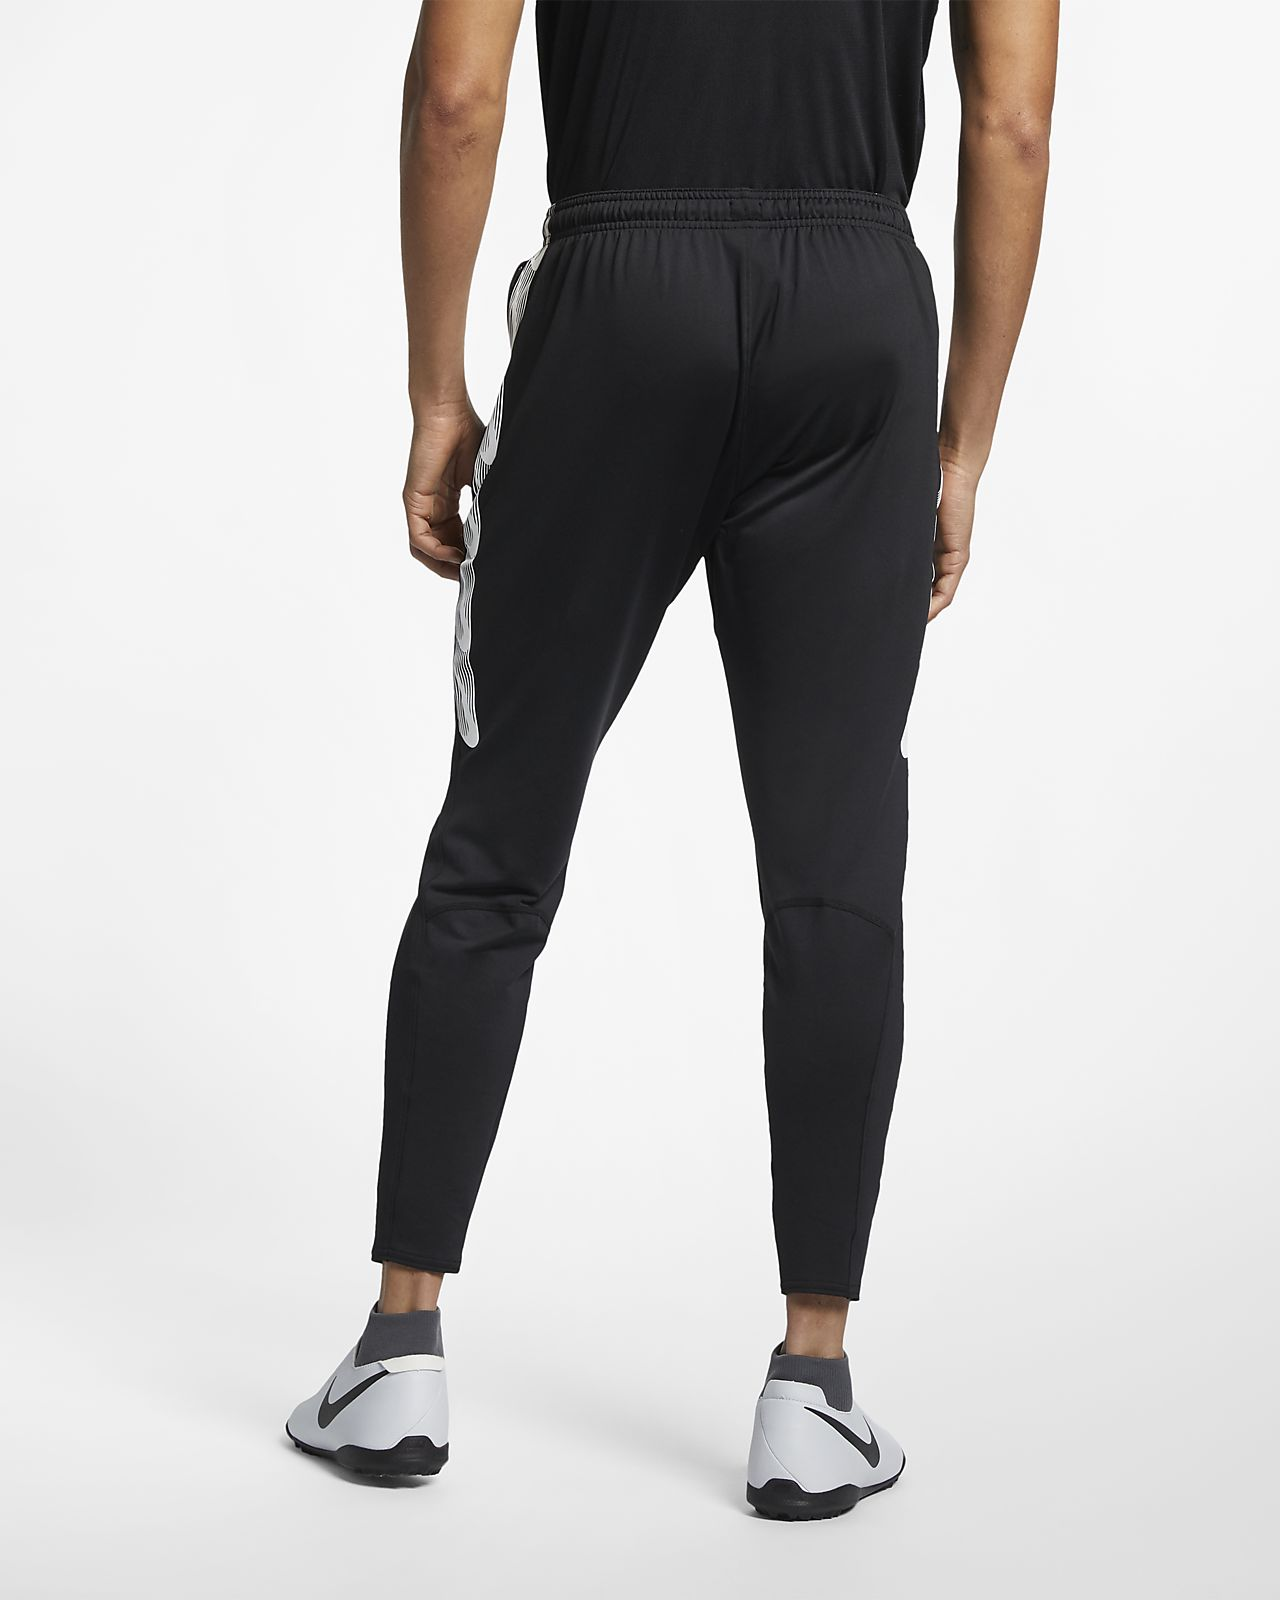 7960f597480de Nike Dri-FIT Squad Men's Football Pants. Nike.com NL